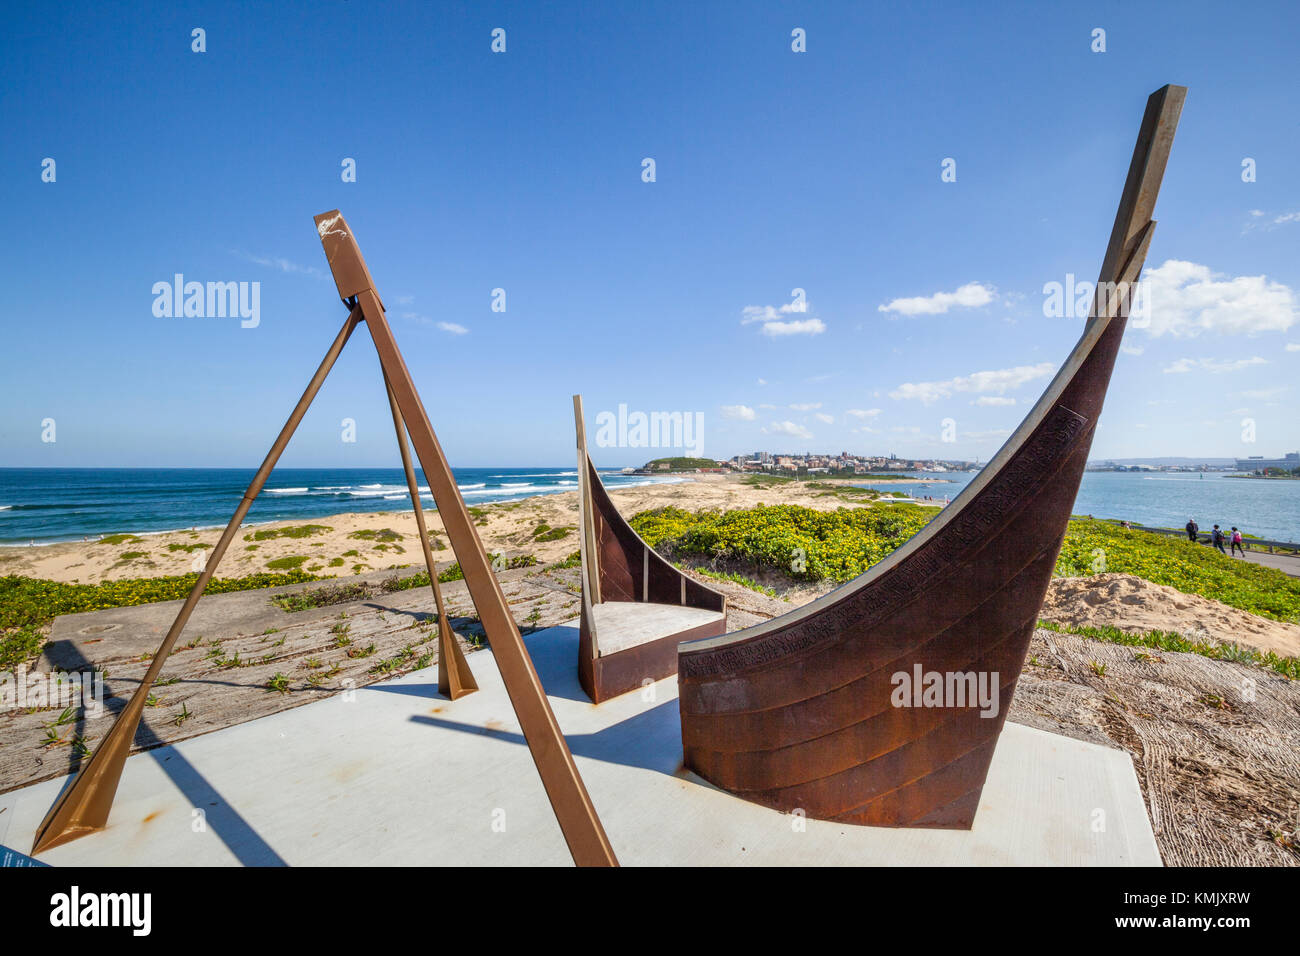 Australia, New South Wales, Newcastle, Nobbys Head, sculpture commemorating the Newcastle Lifeboat Service and Rocket Stock Photo